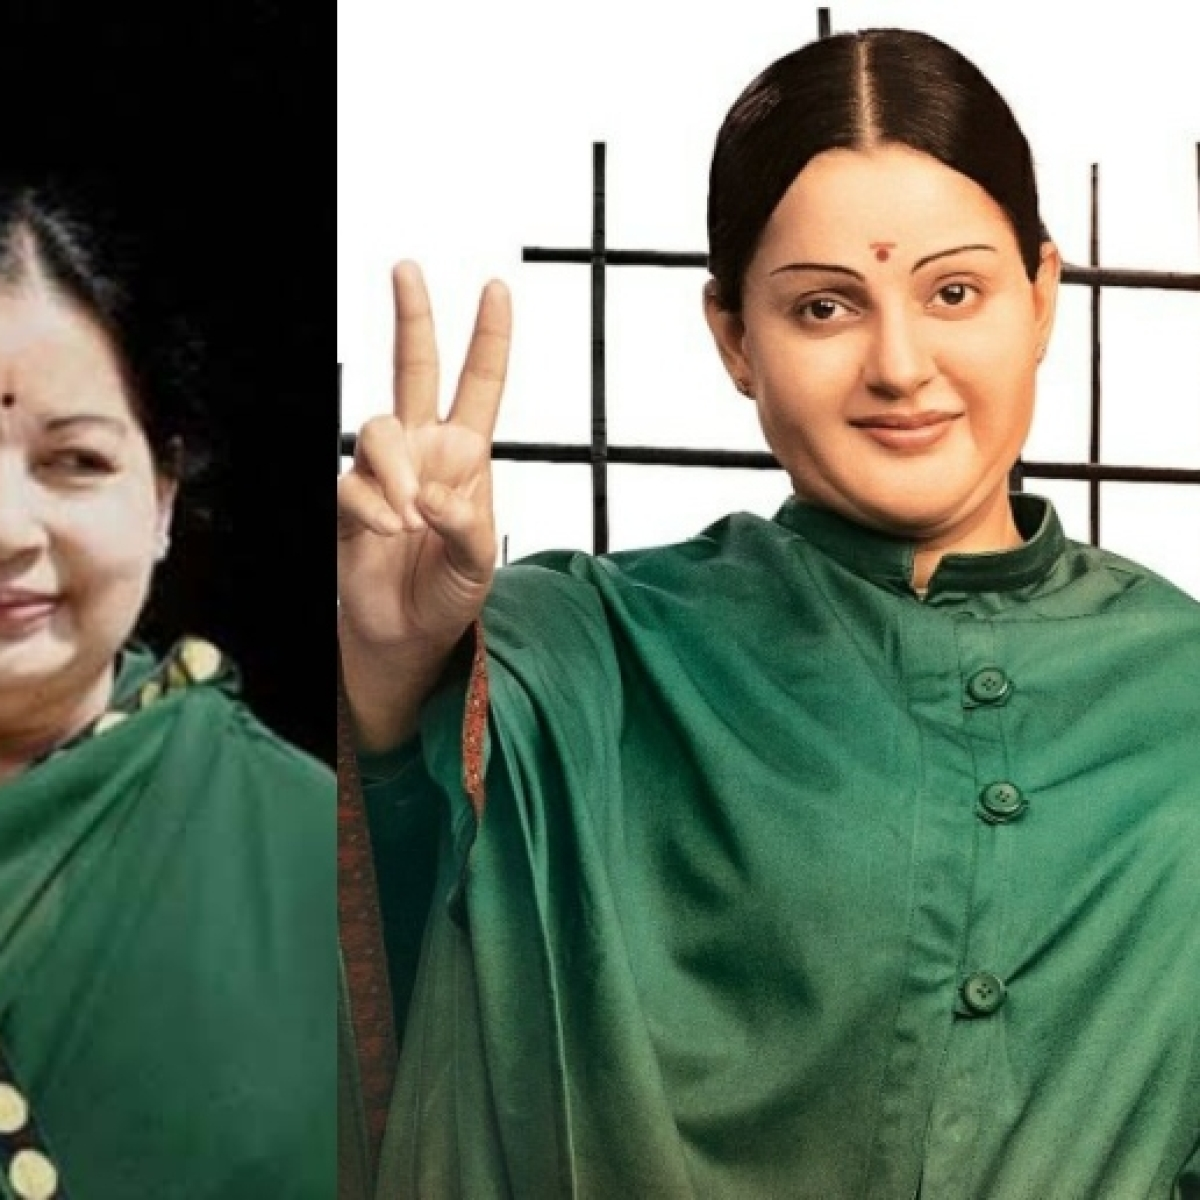 #Thalaivi trends on Twitter as Kangana's Jayalalithaa look evokes mixed reactions